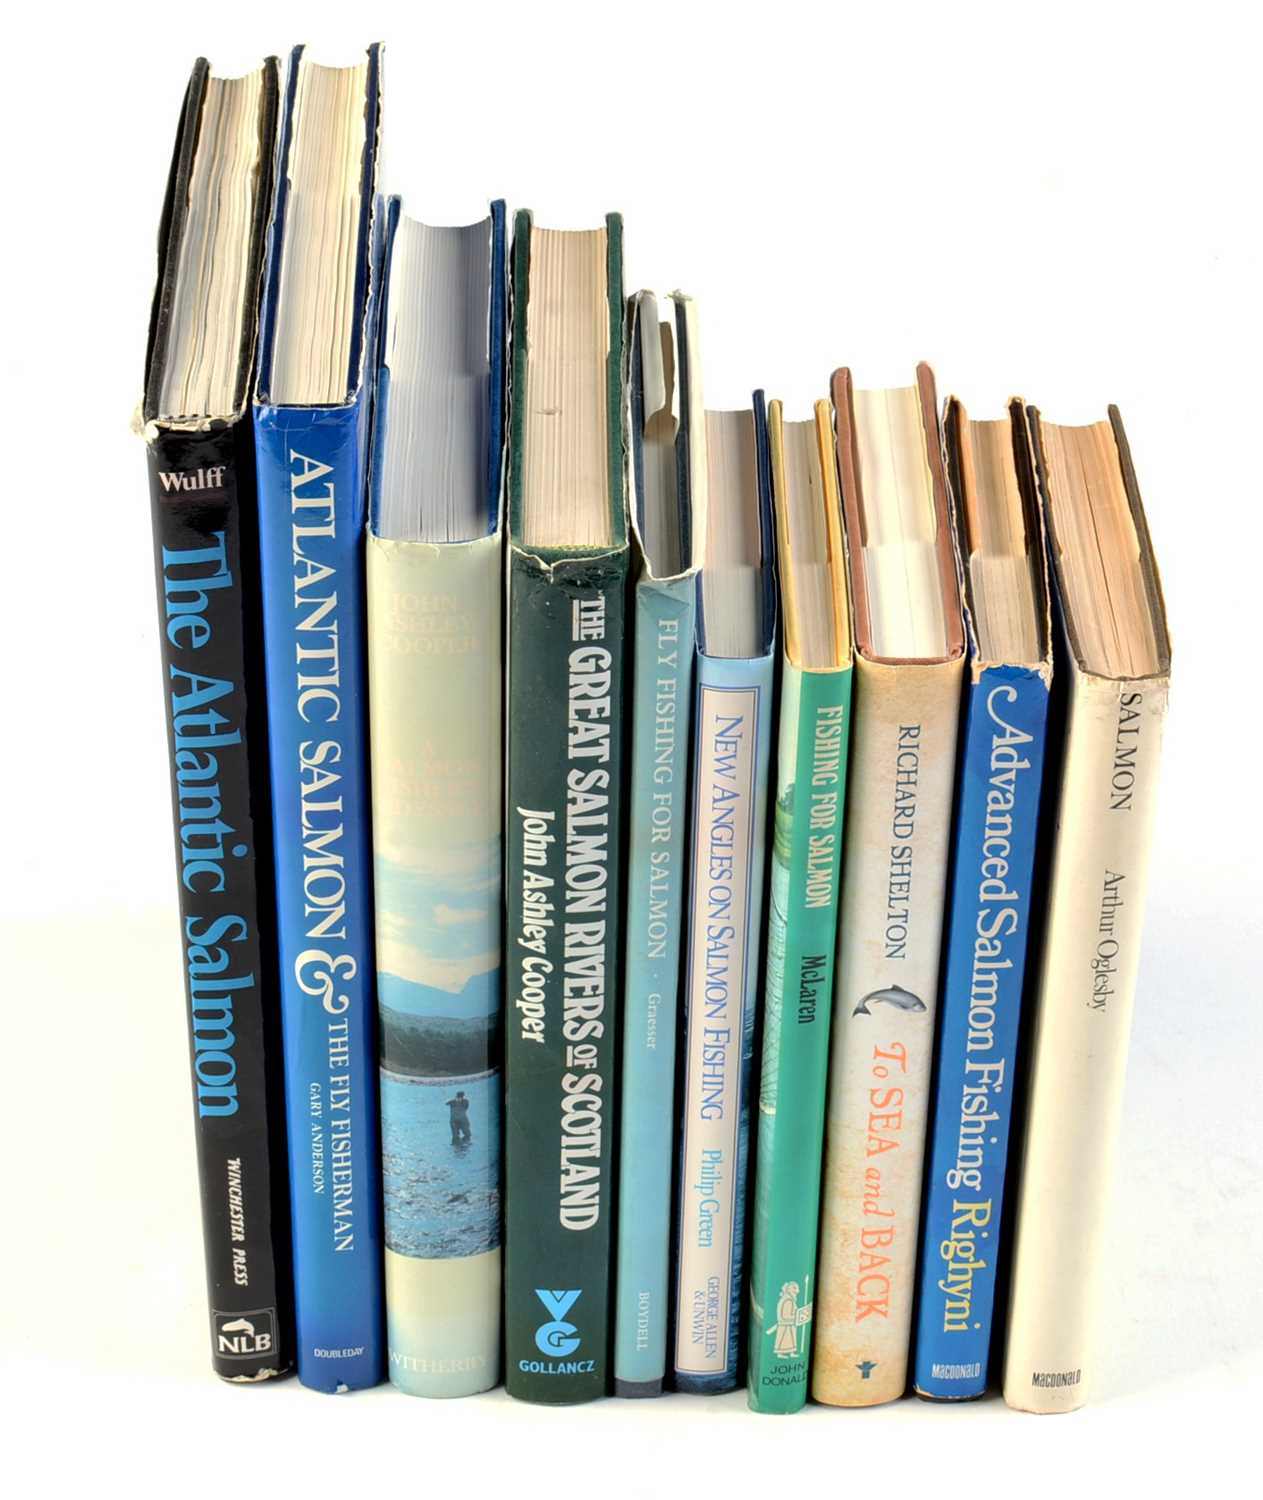 Books on angling